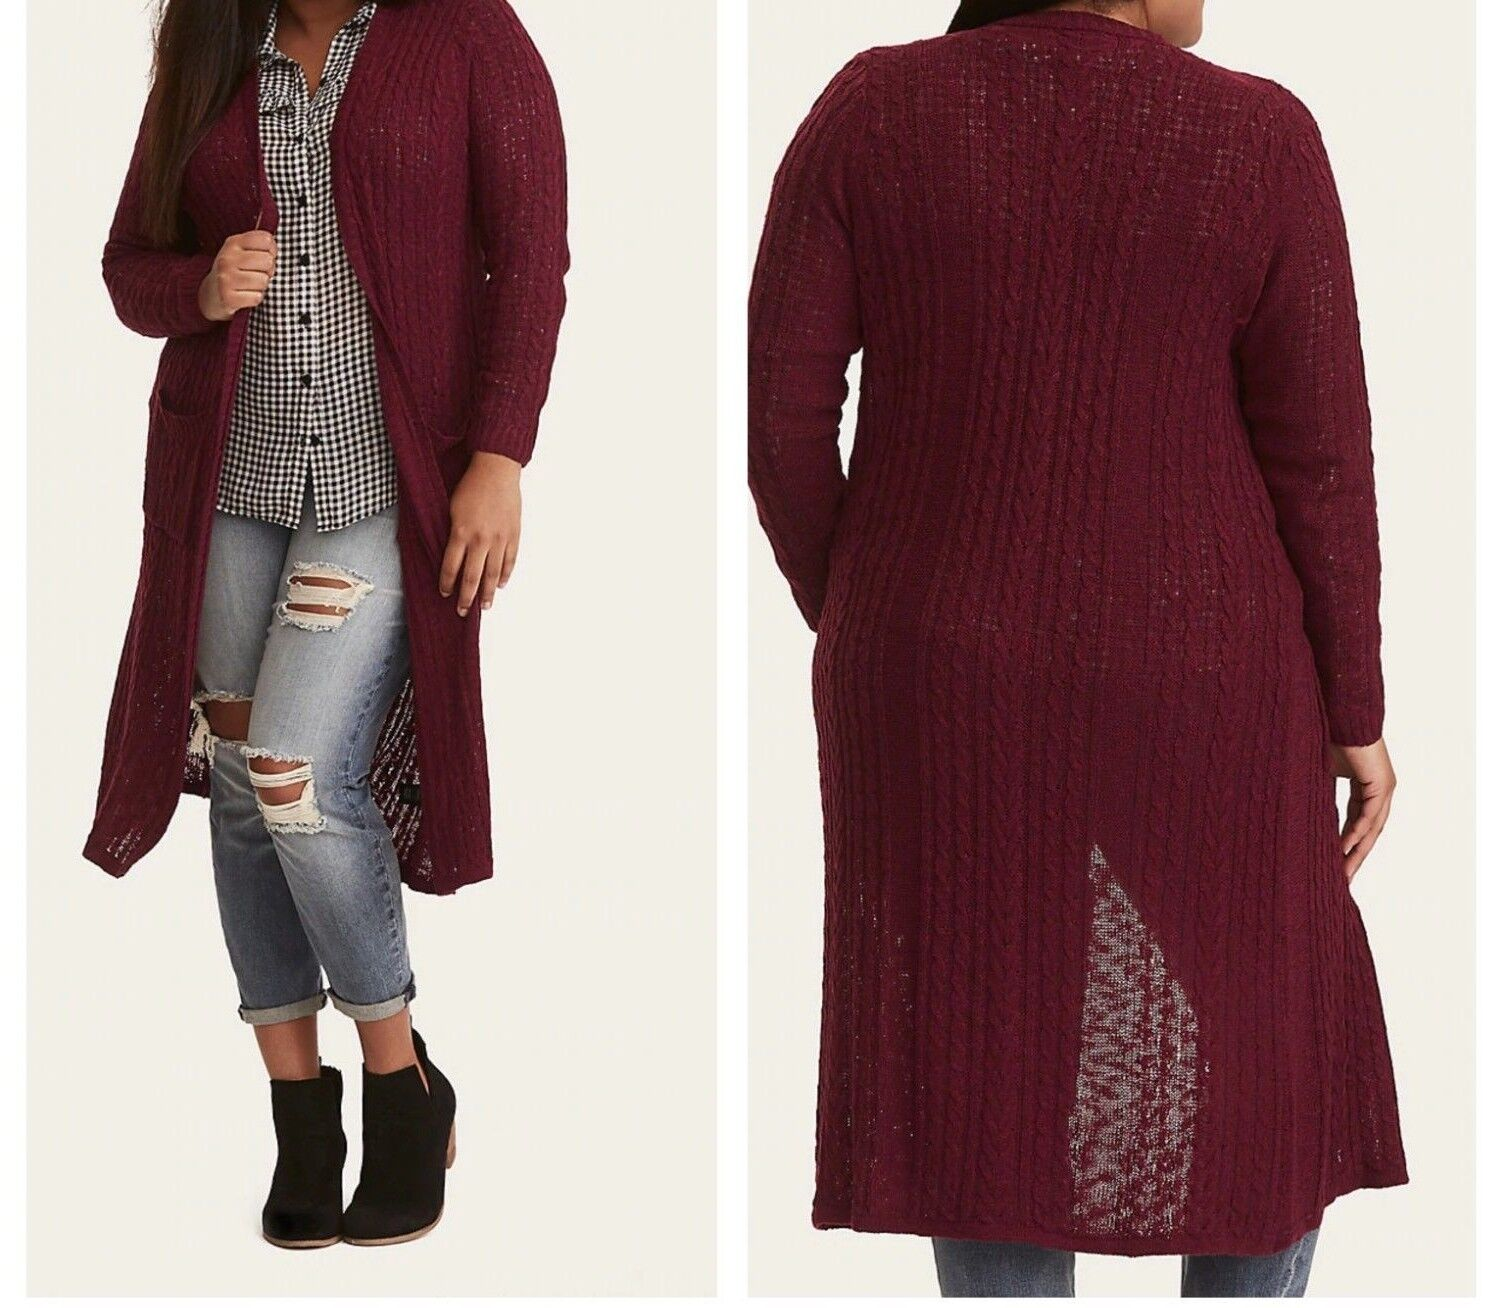 Torrid Purple Cable Knit Duster Sweater 1X 14 16